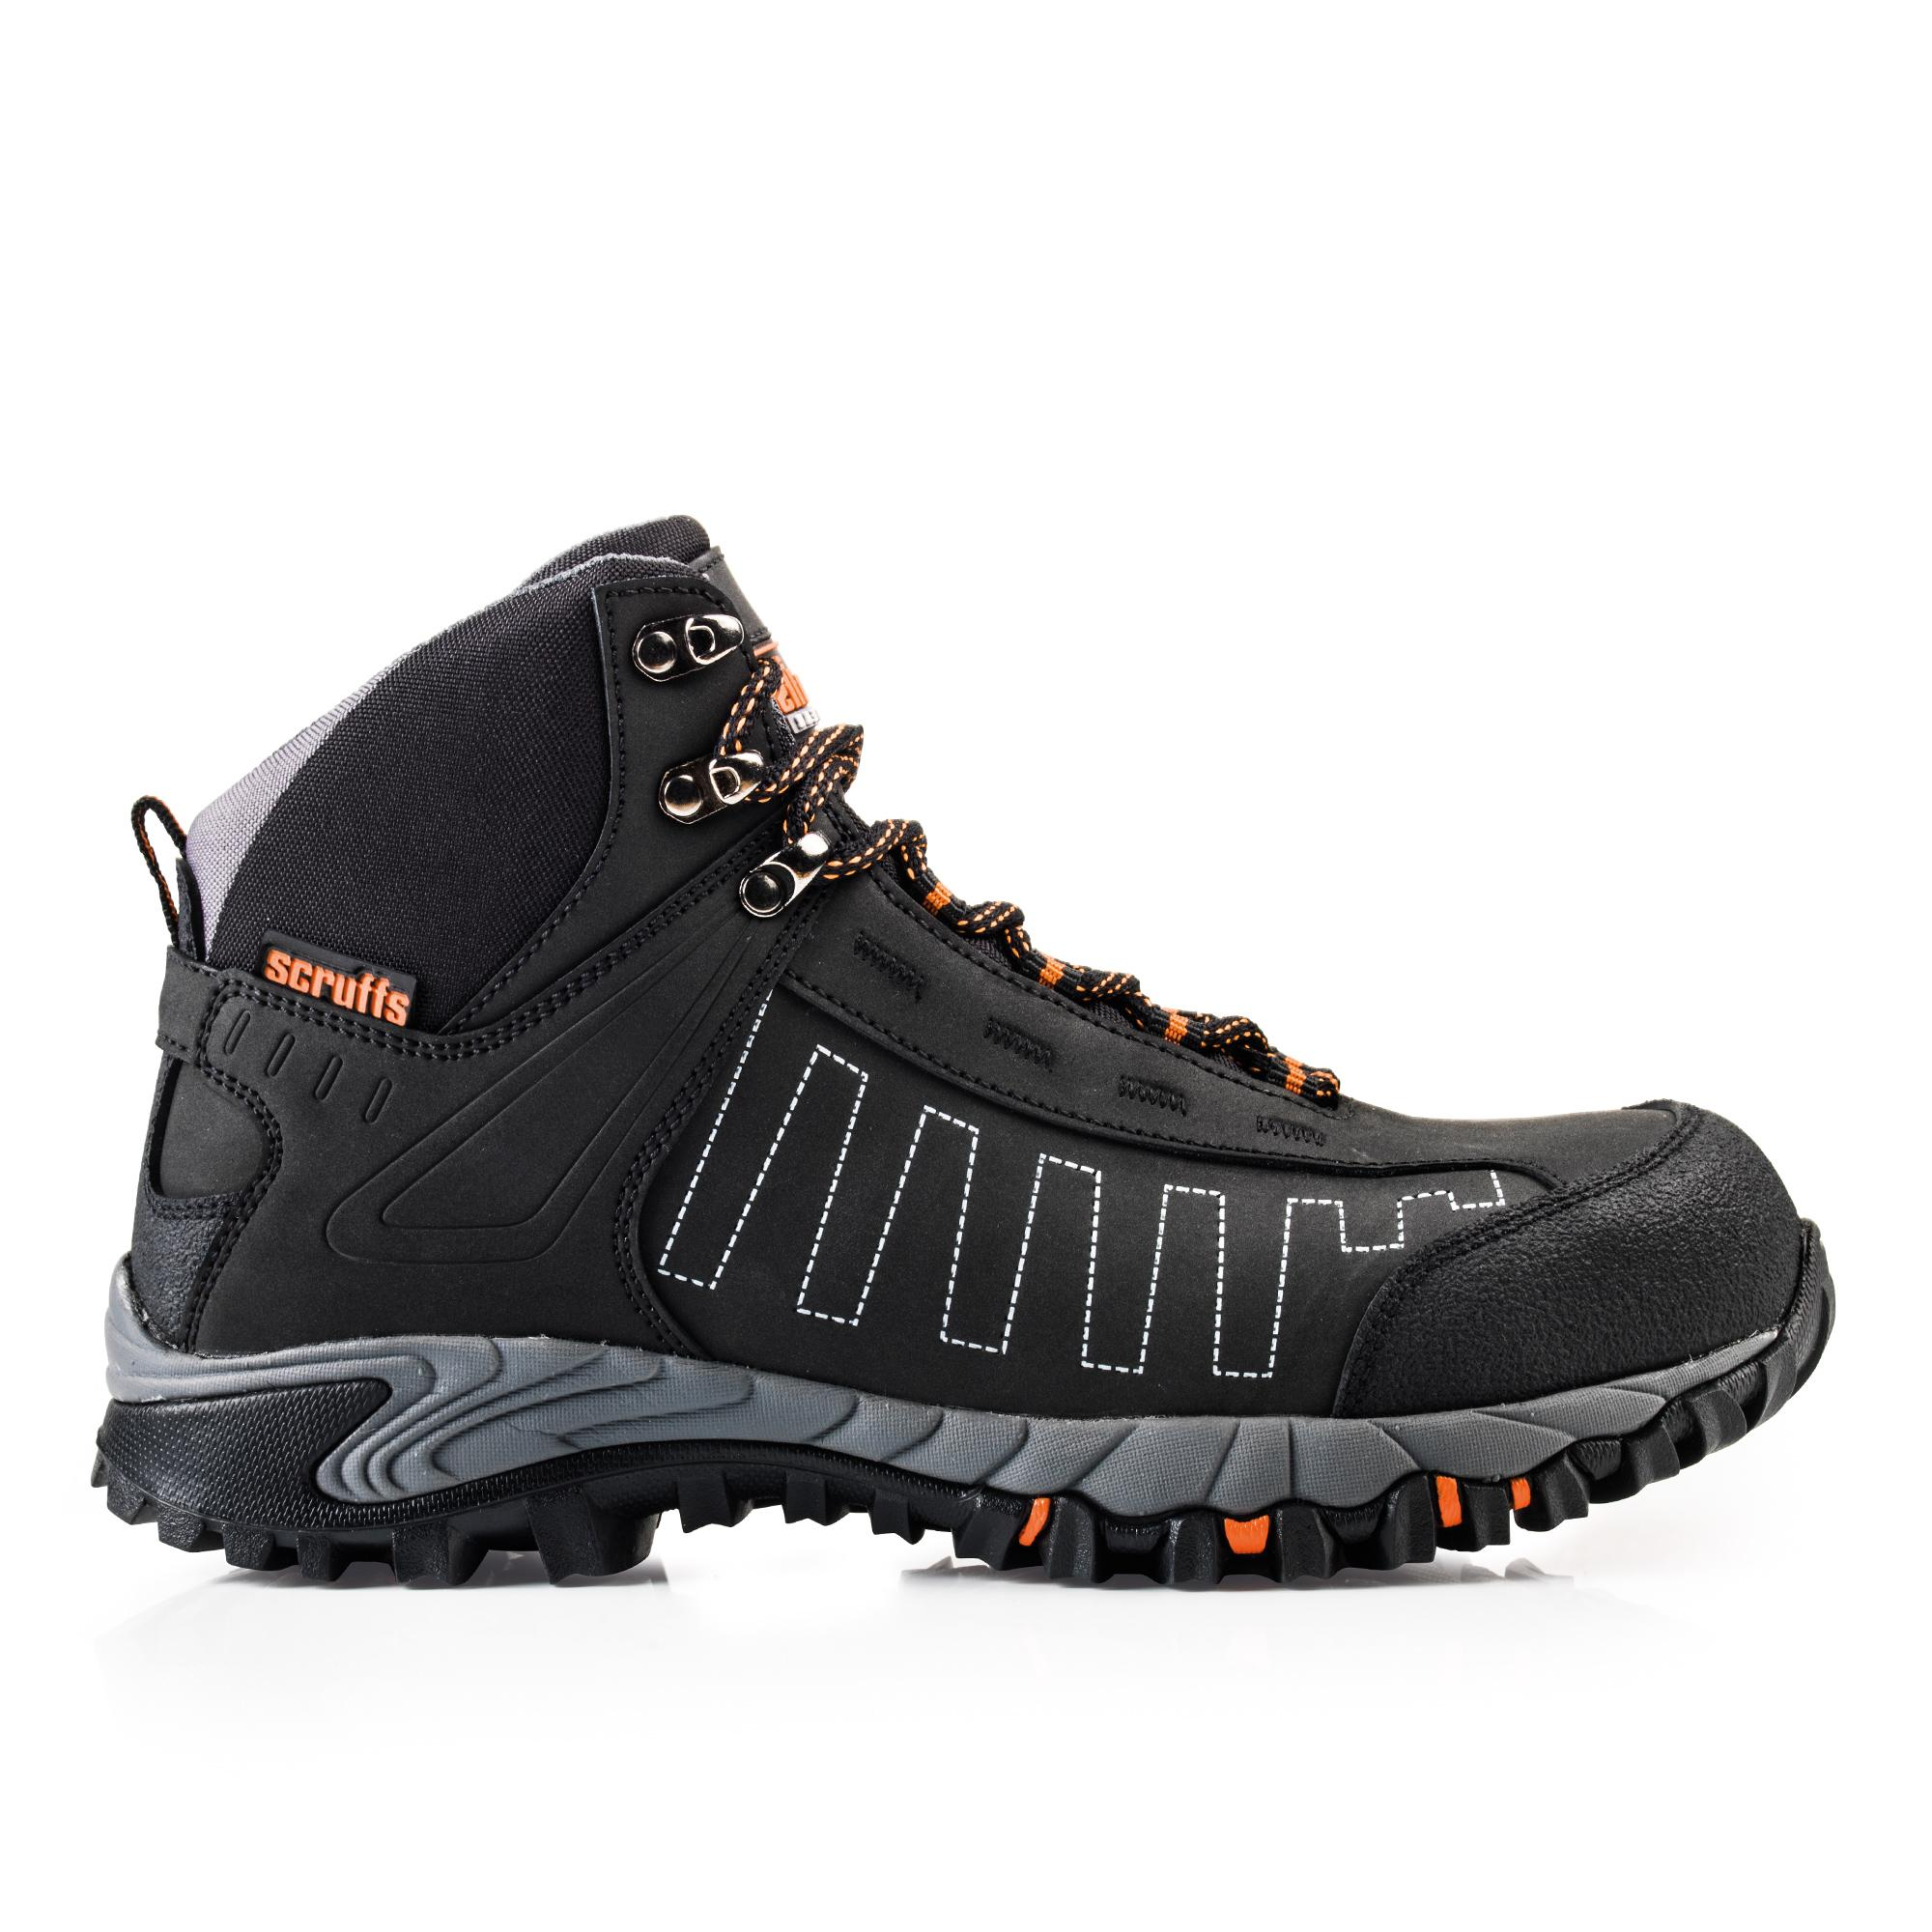 Cheviot Safety Boots